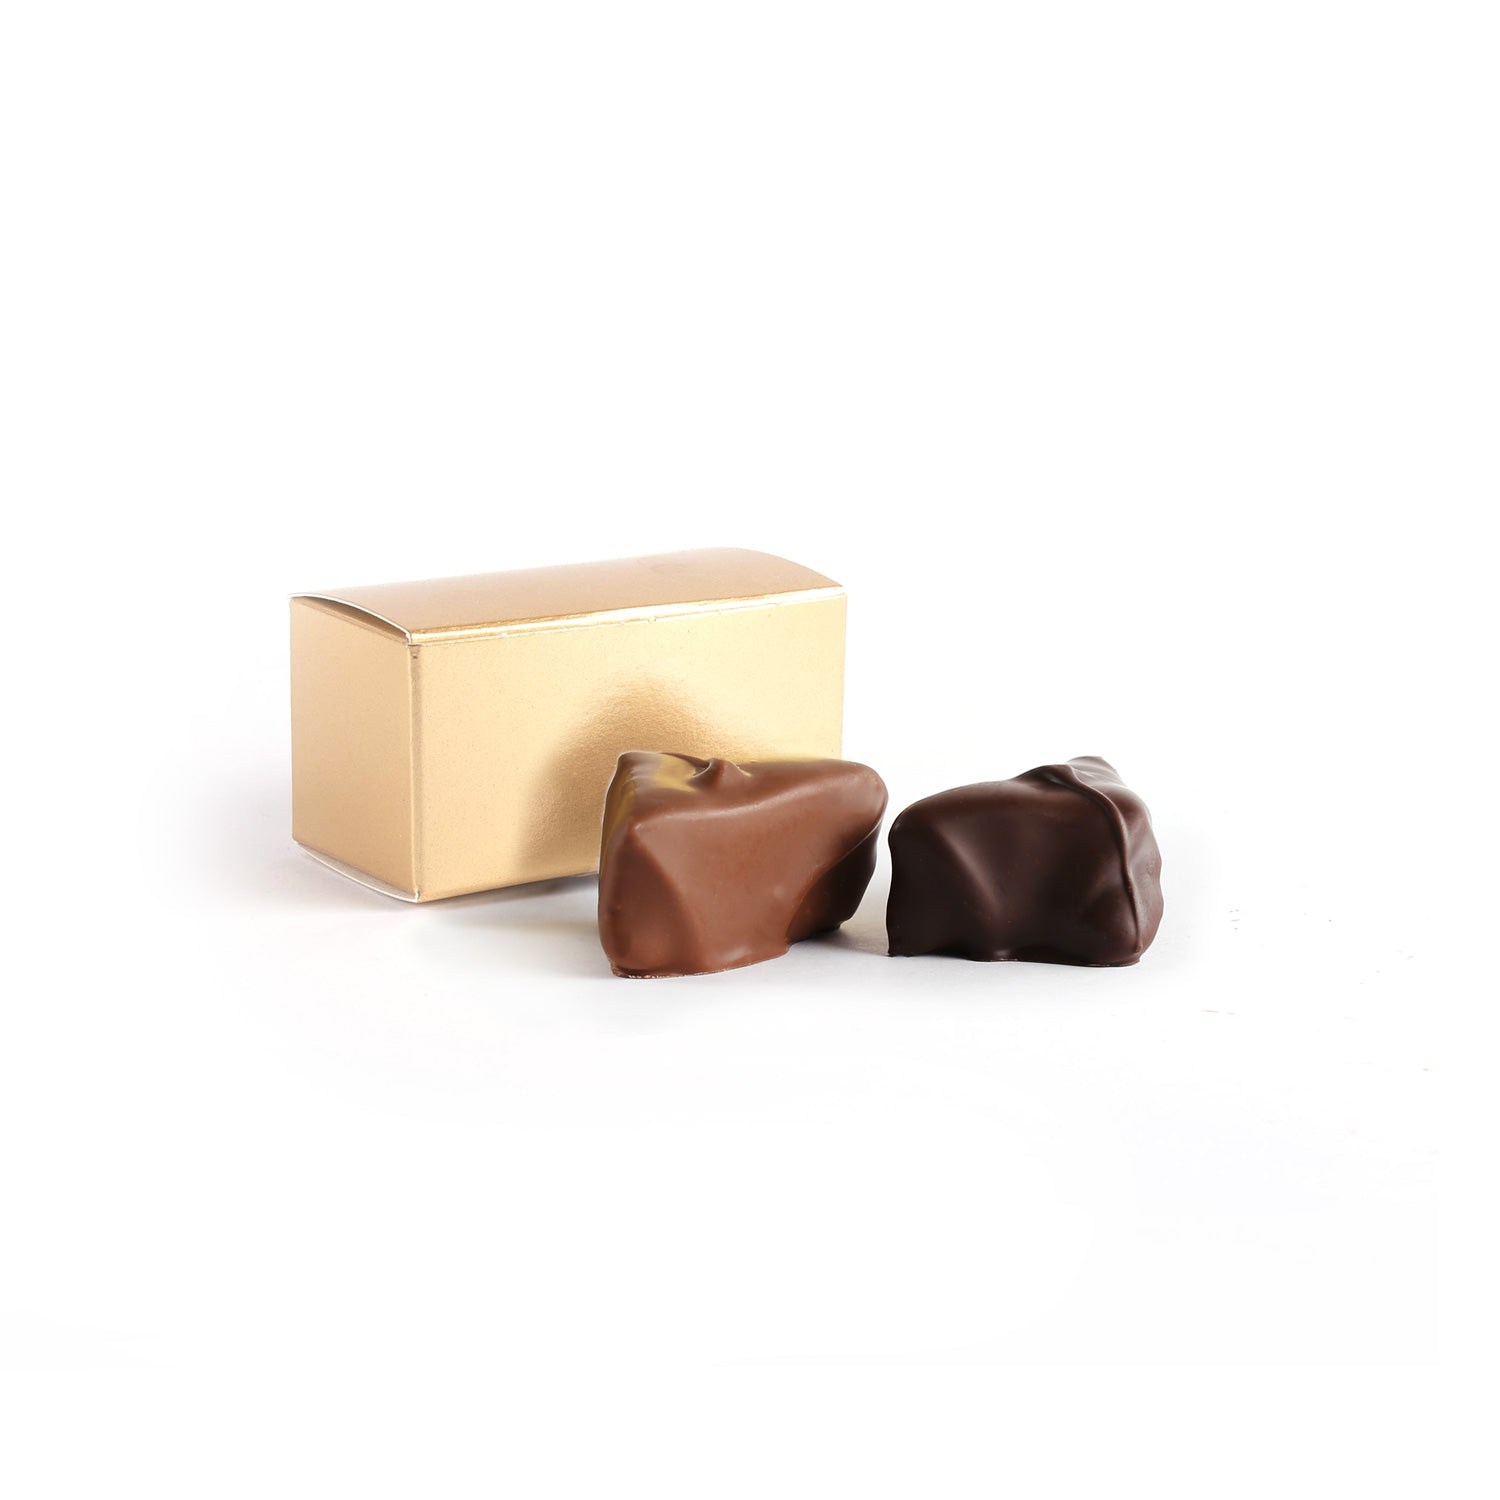 Product photo of two chocolate truffle box